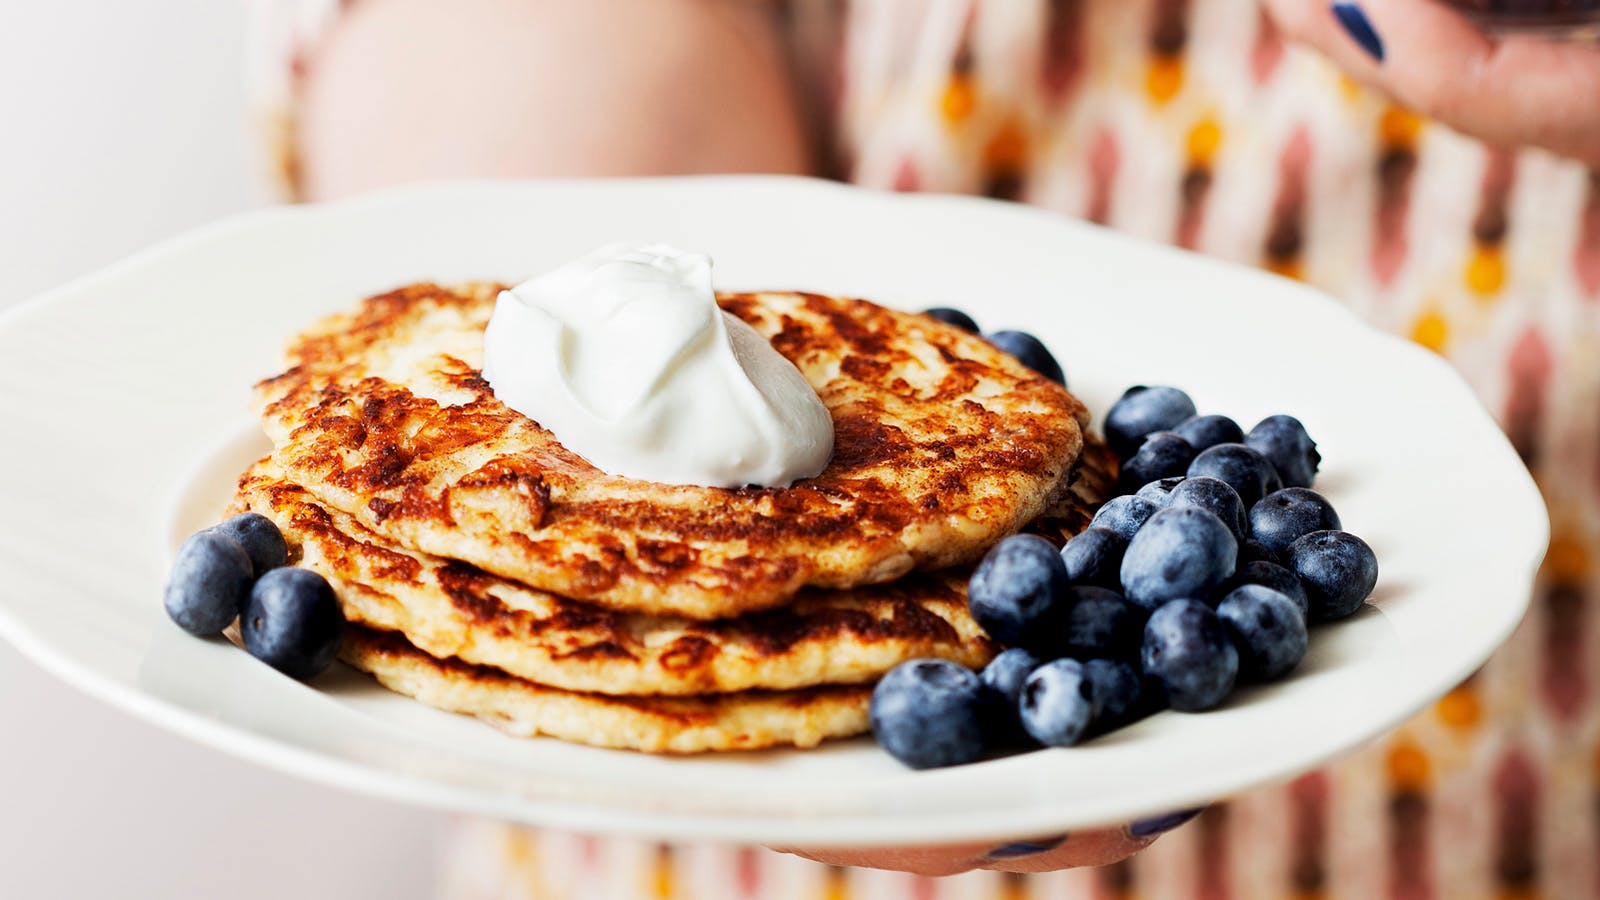 Keto Pancakes with Berries and Cream